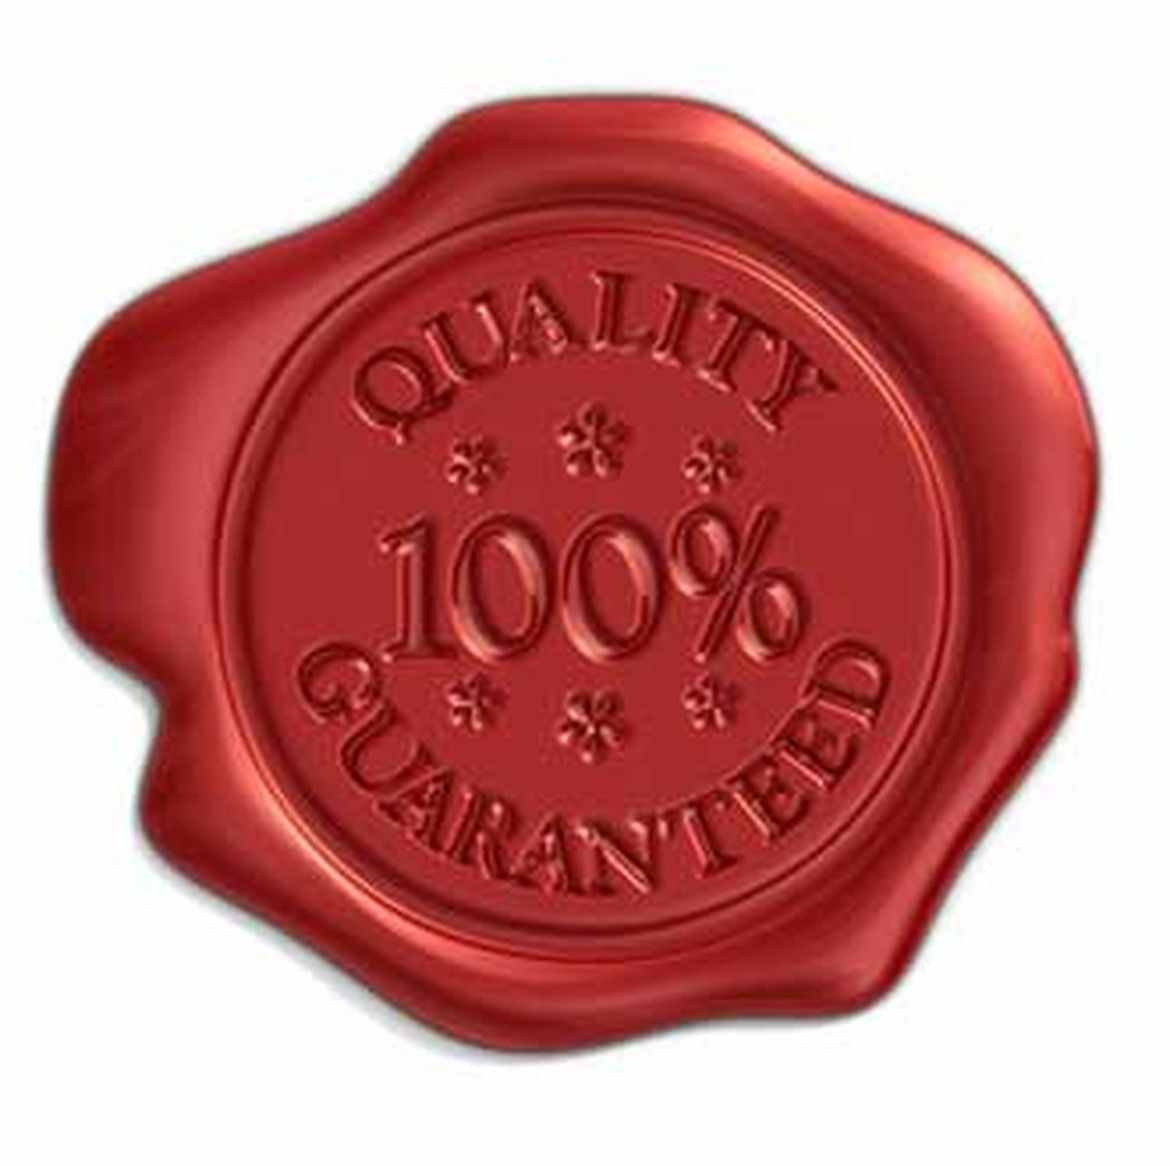 100% Quality Guaranteed World Class Warranty